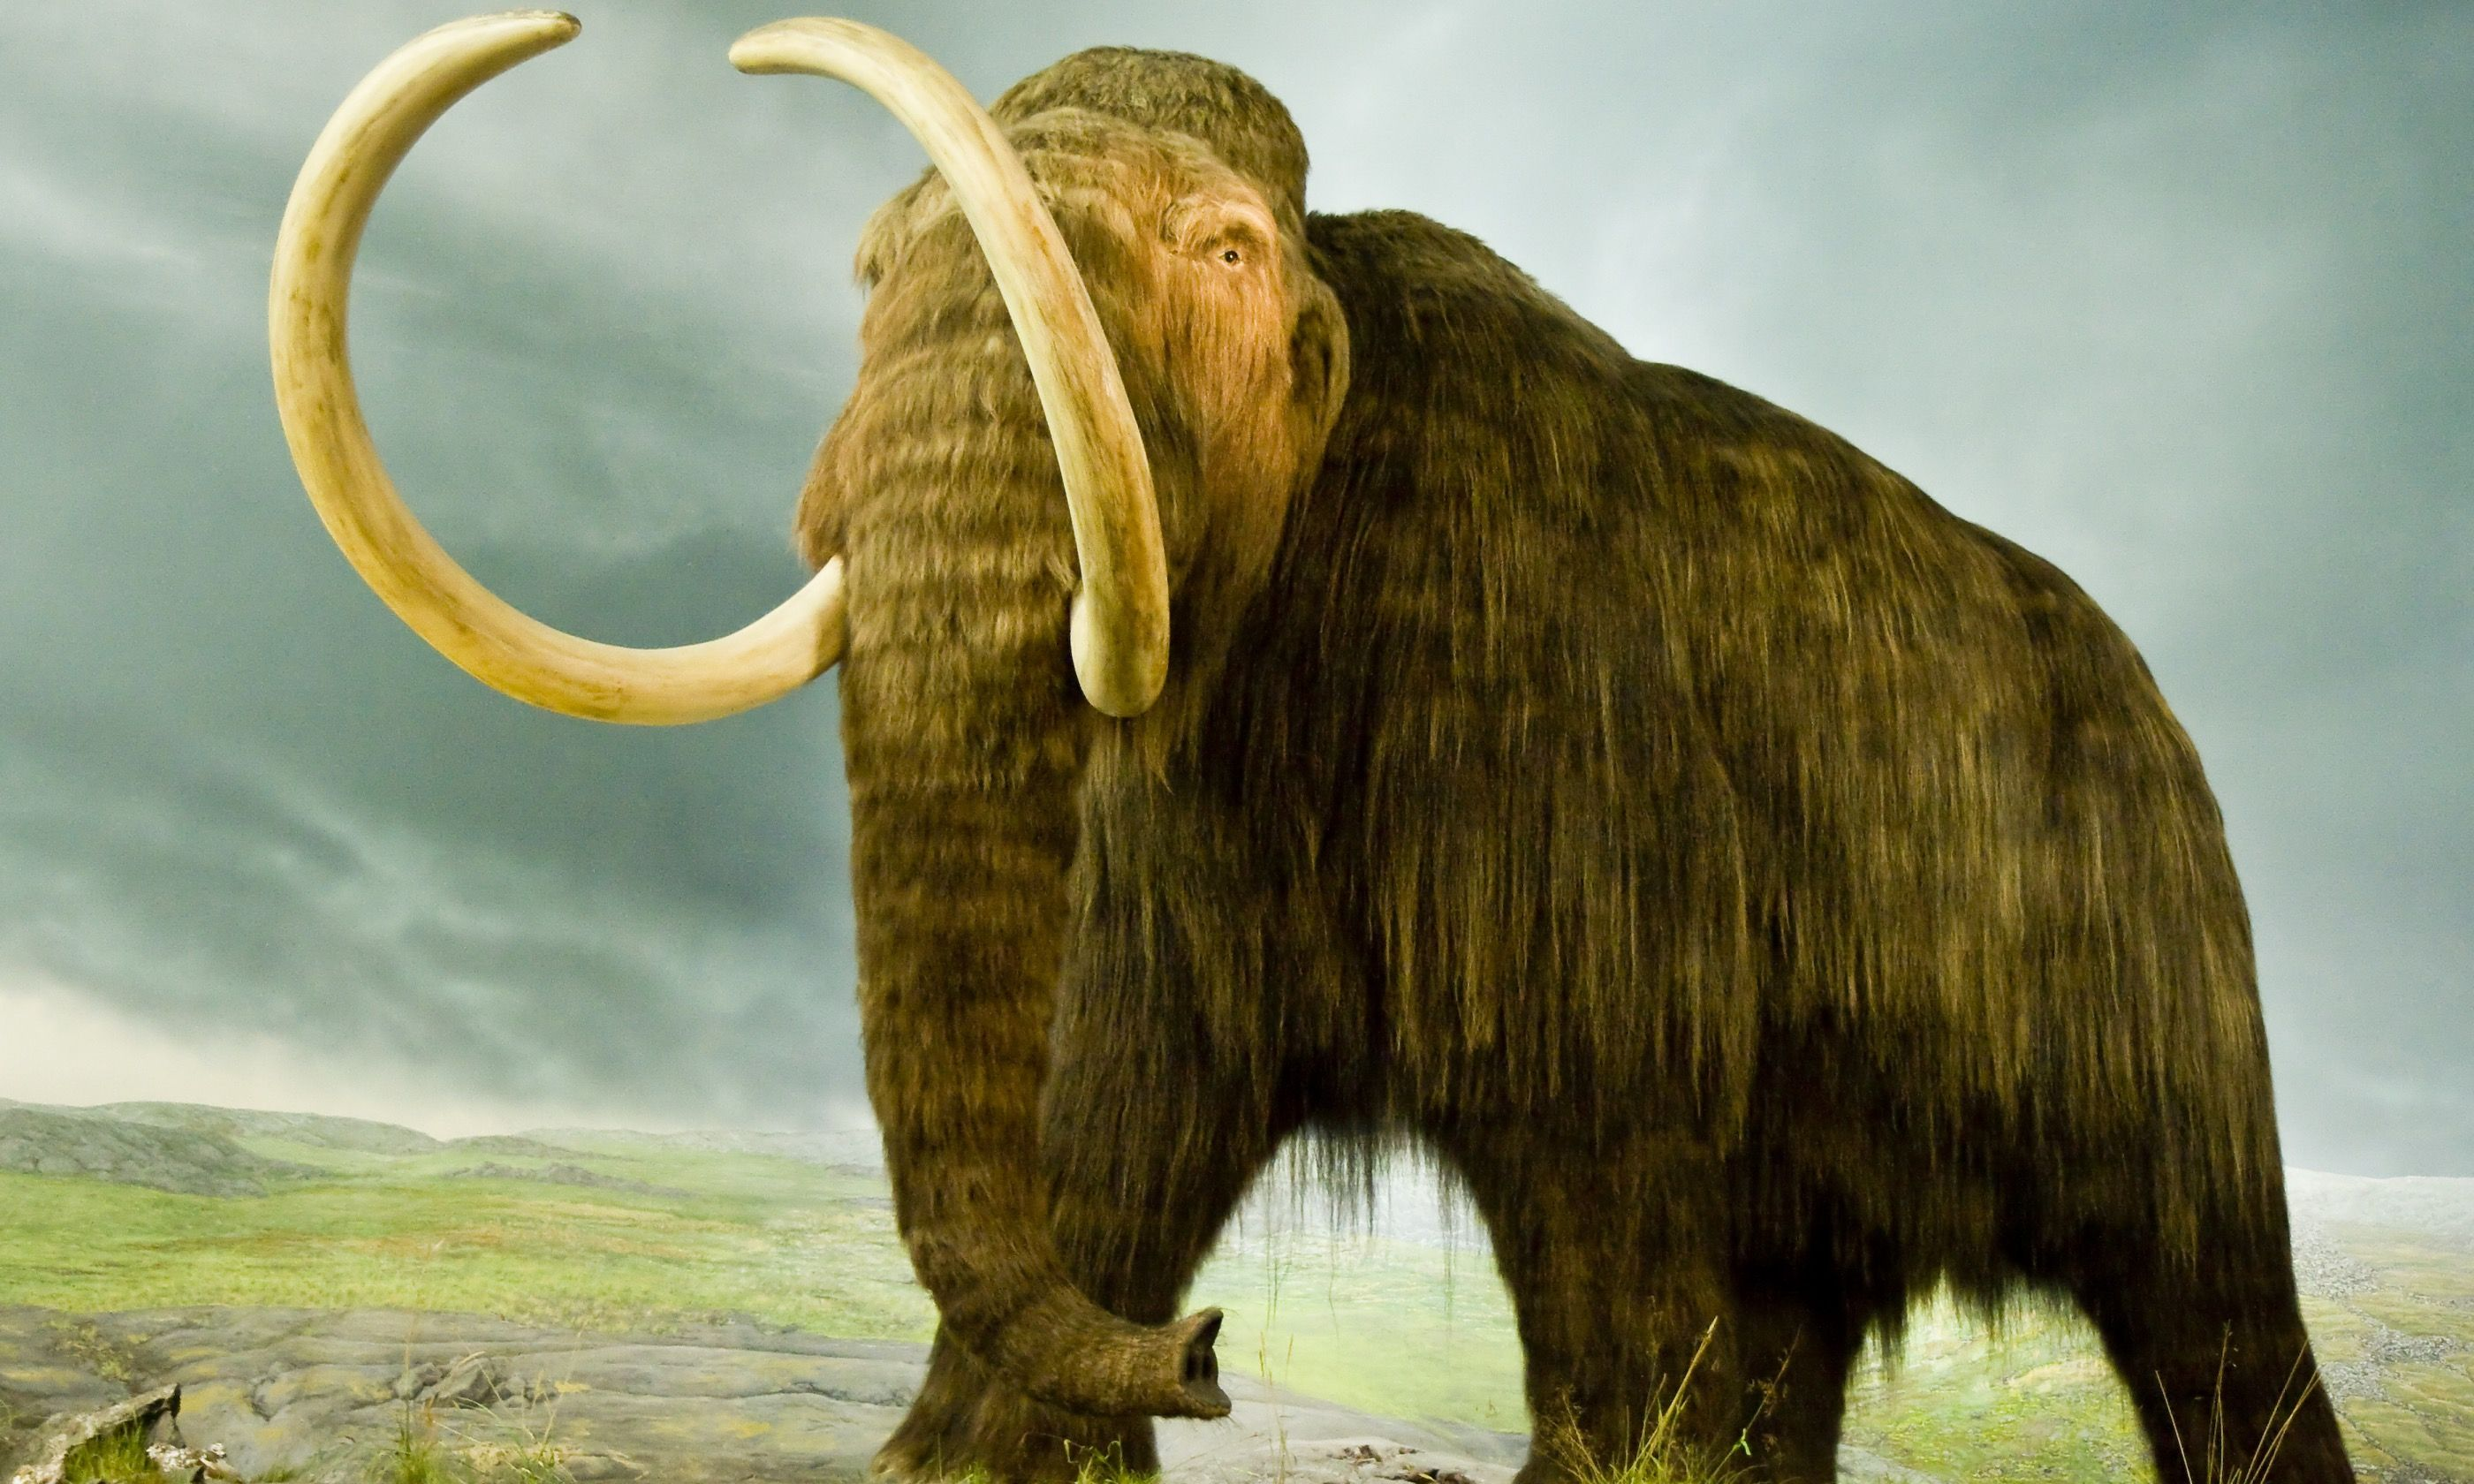 A giant woolly mammoth. Maybe from Wrangel Island (Dreamstime)